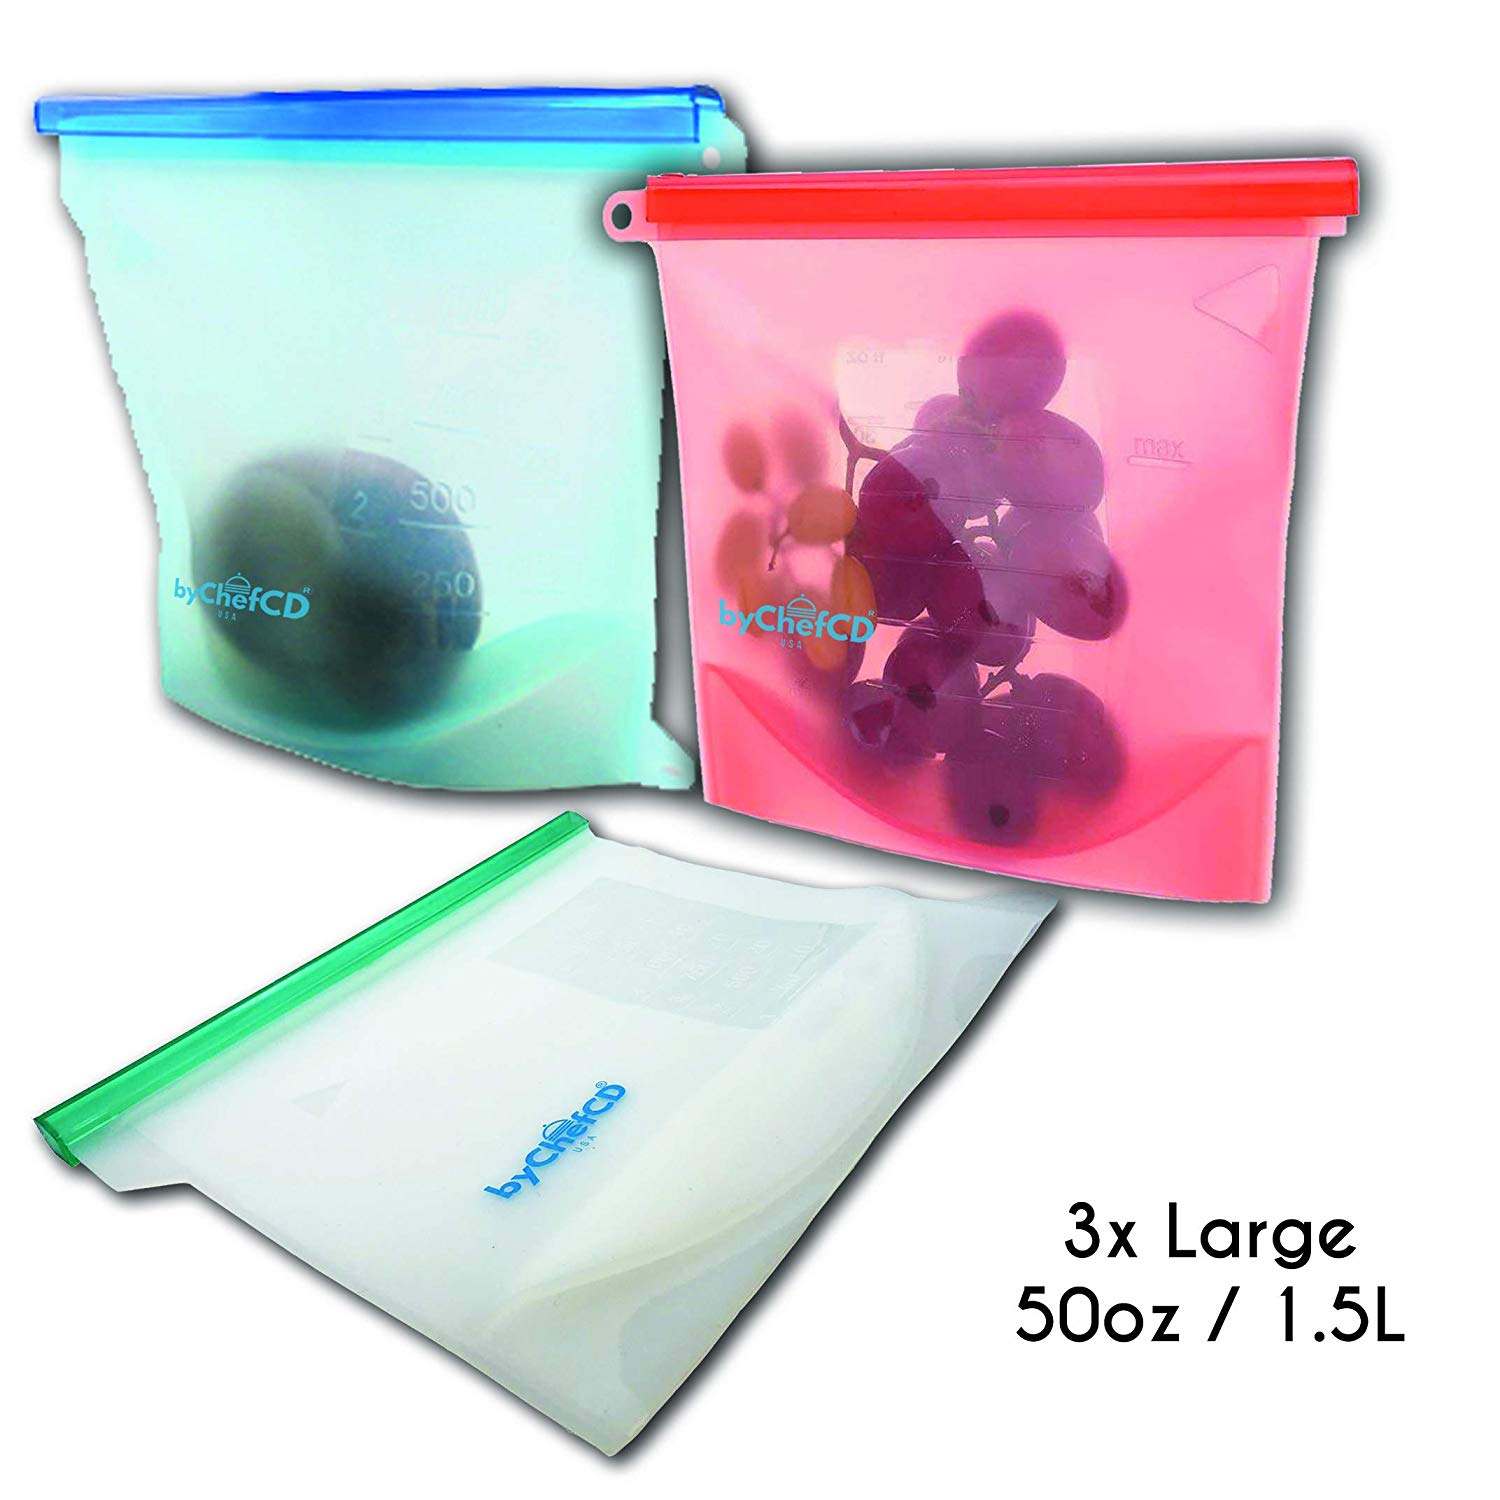 LARGE Reusable Silicone Storage Bags (3x 50oz) - ByChefCd Cooking products seller from Orlando, FL